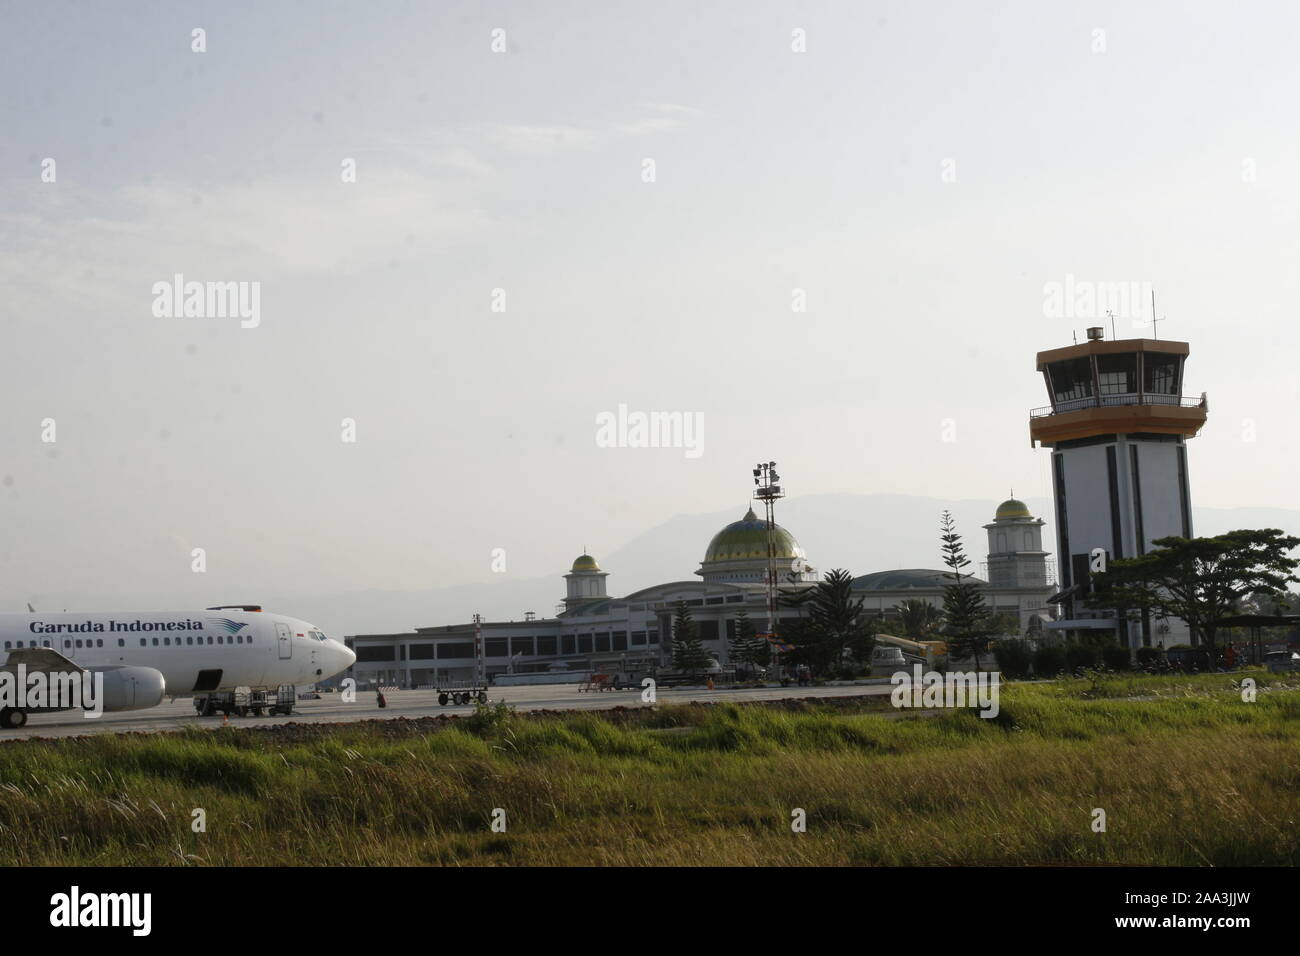 Banda Aceh Aceh Indonesia October 31 2008 Development Of Banda Aceh Airport On The Island Of Sumatra Indonesia After A 3 Year Tsunami Tragedy Stock Photo Alamy